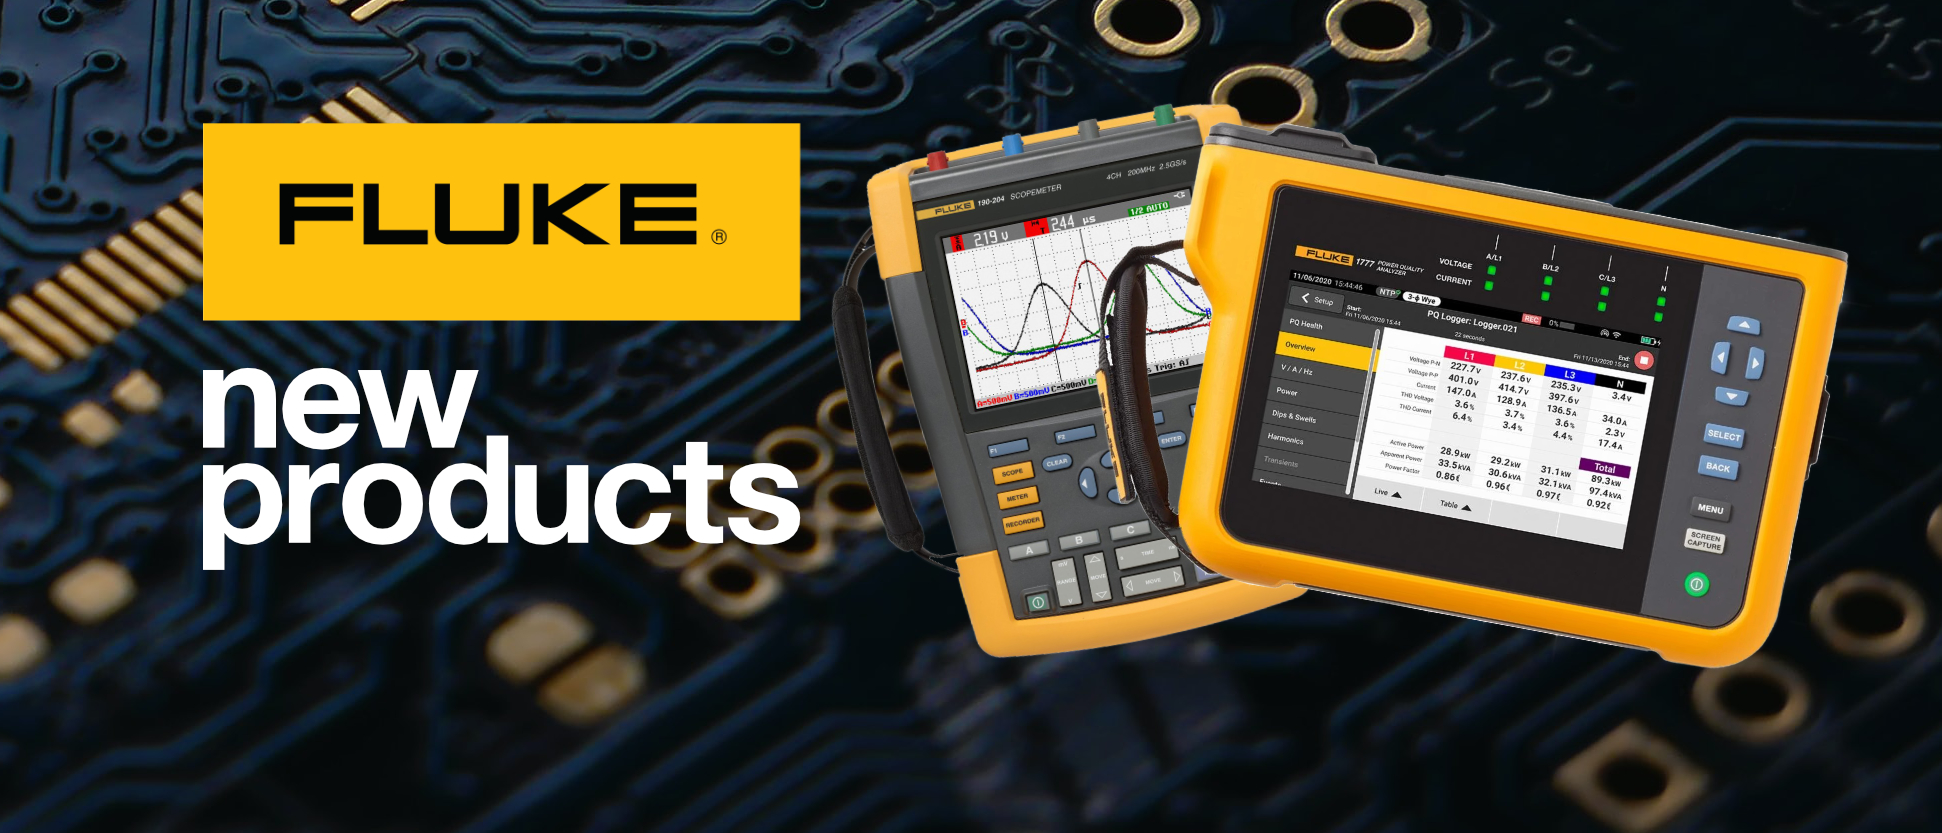 All new Products from Fluke